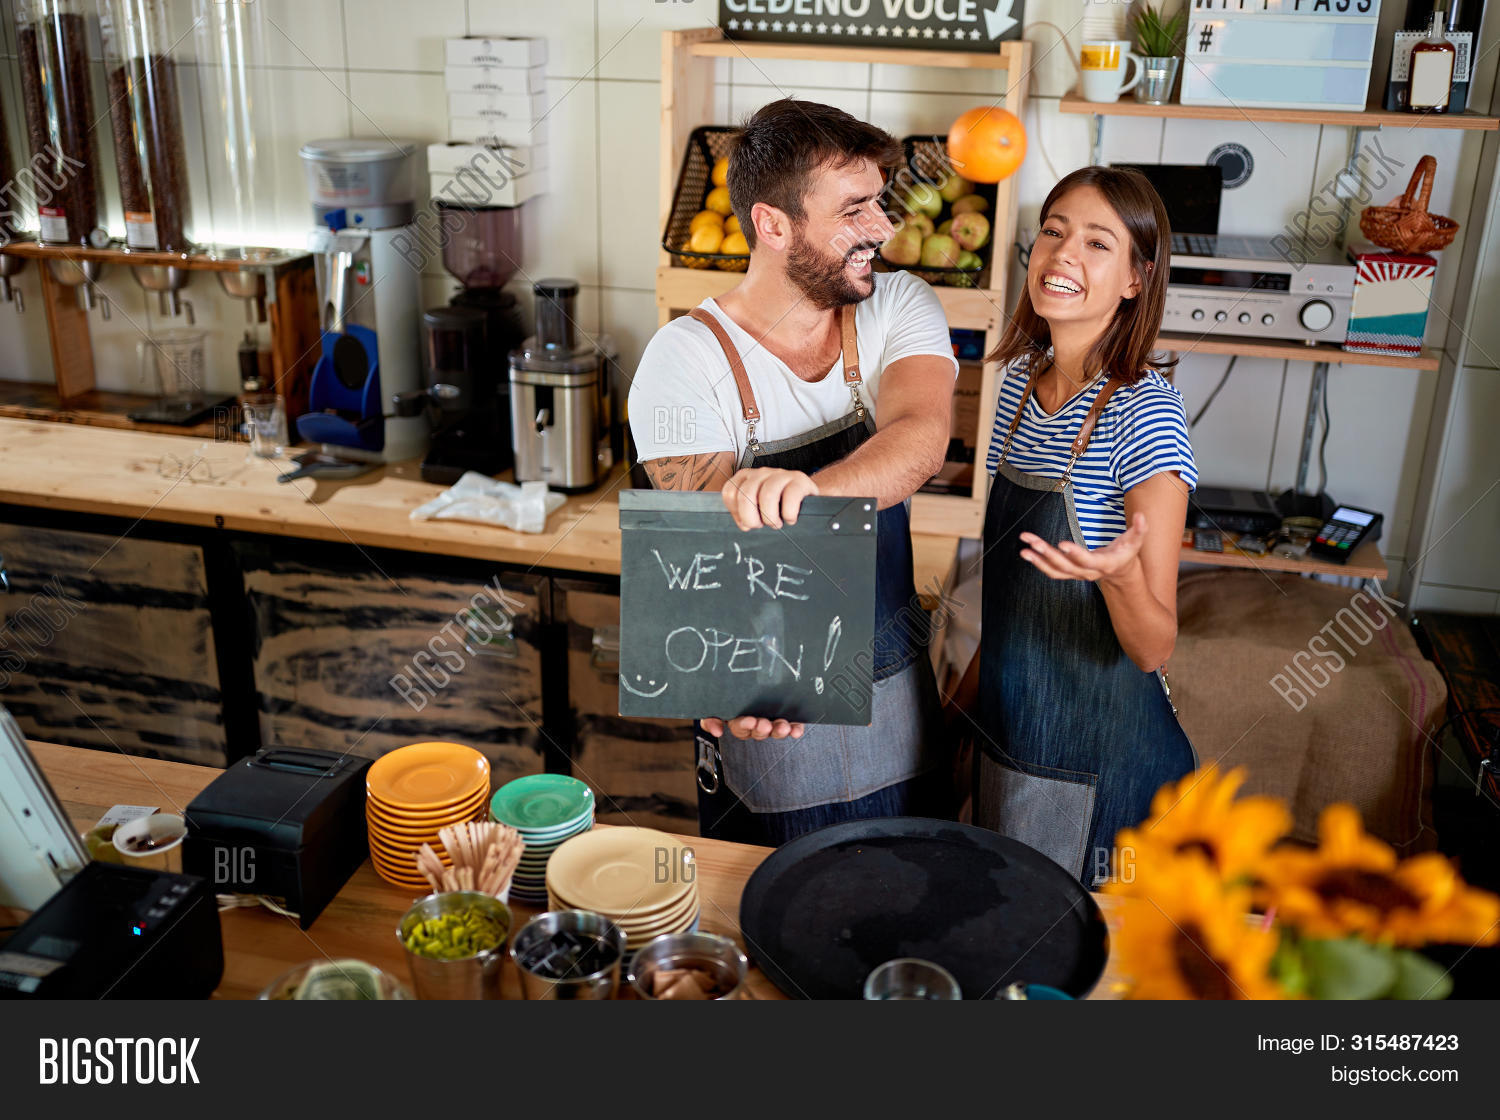 apron,bar,barista,business,businessman,businesswoman,cafe,cafeteria,caucasian,cheerful,coffee,company,concept,couple,employee,equipment,female,happy,internet,job,laptop,leader,lifestyle,male,man,manager,men,modern,open,owner,partner,people,professional,proud,shop,sign,small,smiling,store,success,technology,two,wireless,woman,work,working,workplace,young